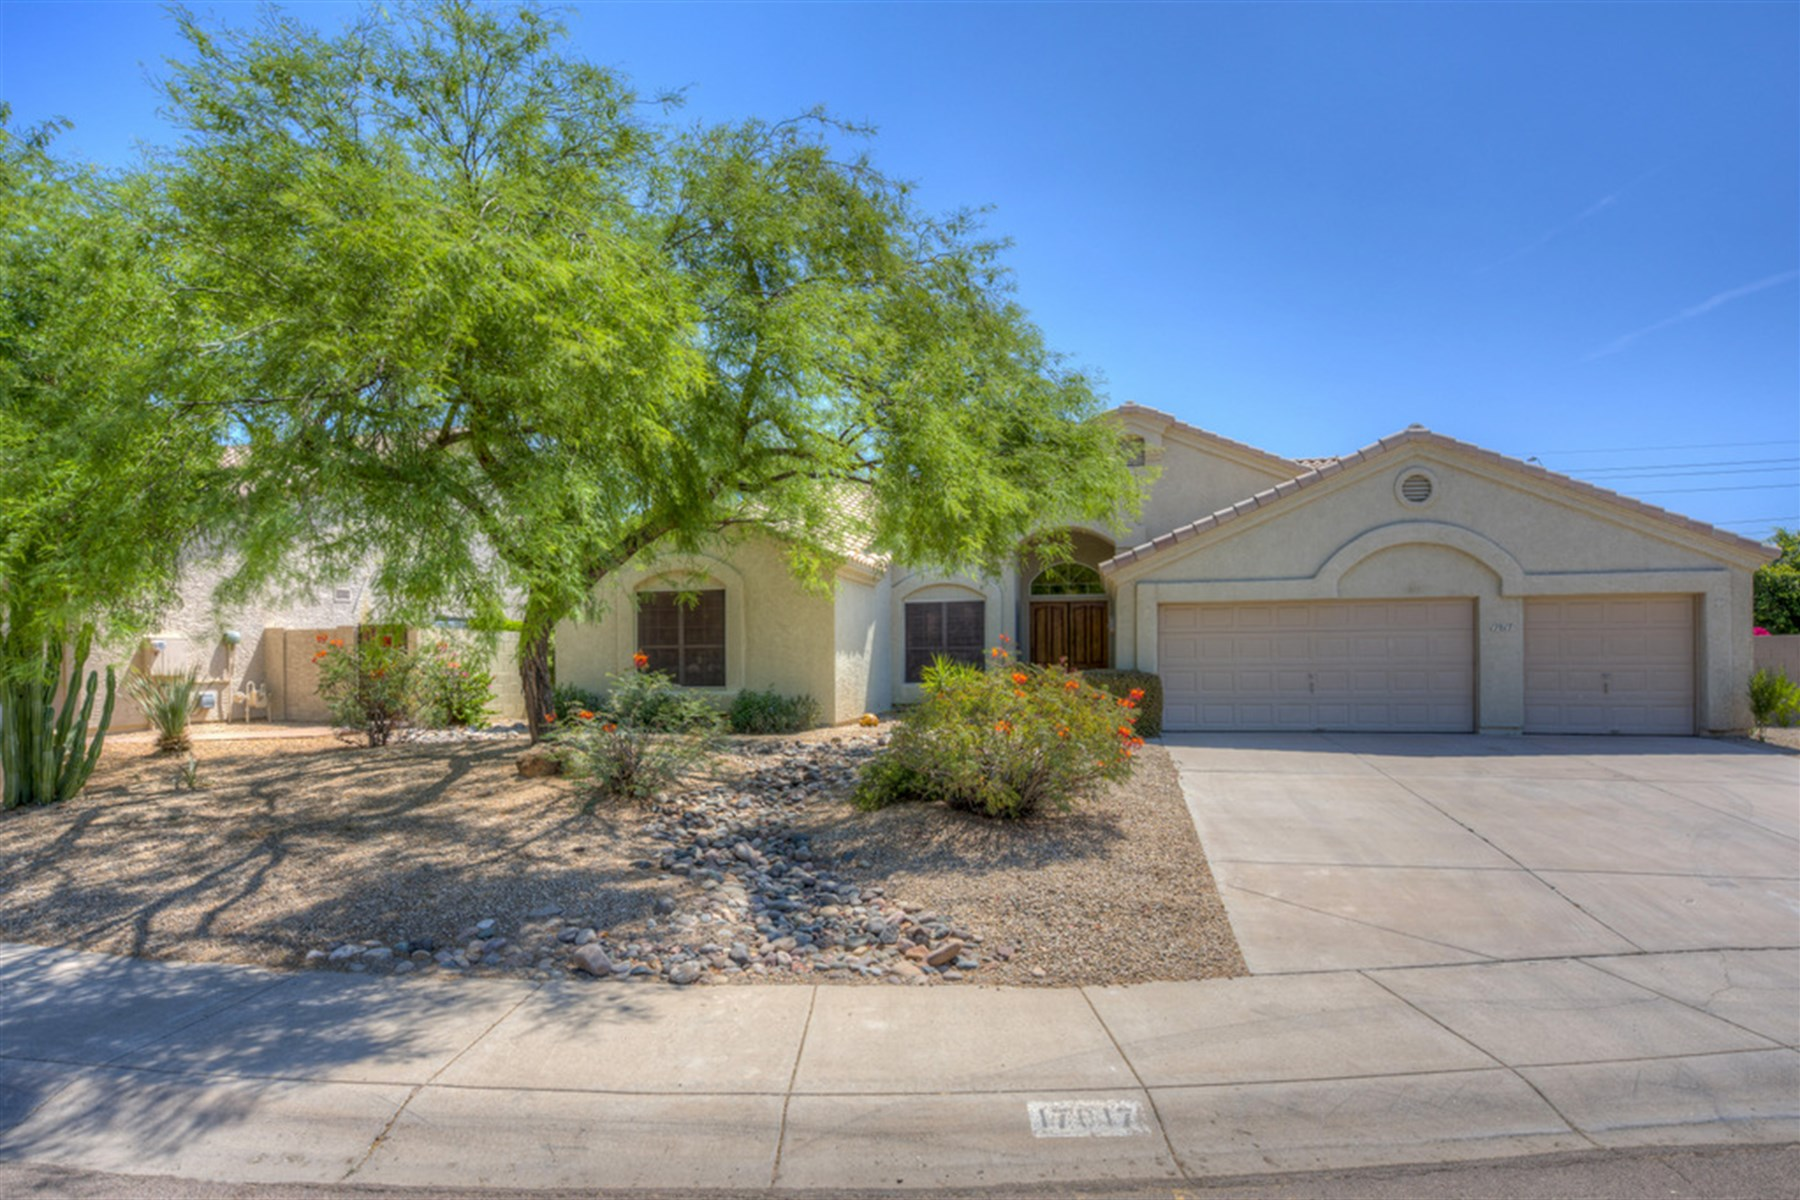 Single Family Home for Sale at Lovely home in Arabian Views in Scottsdale 17017 N 55th Pl Scottsdale, Arizona, 85254 United States